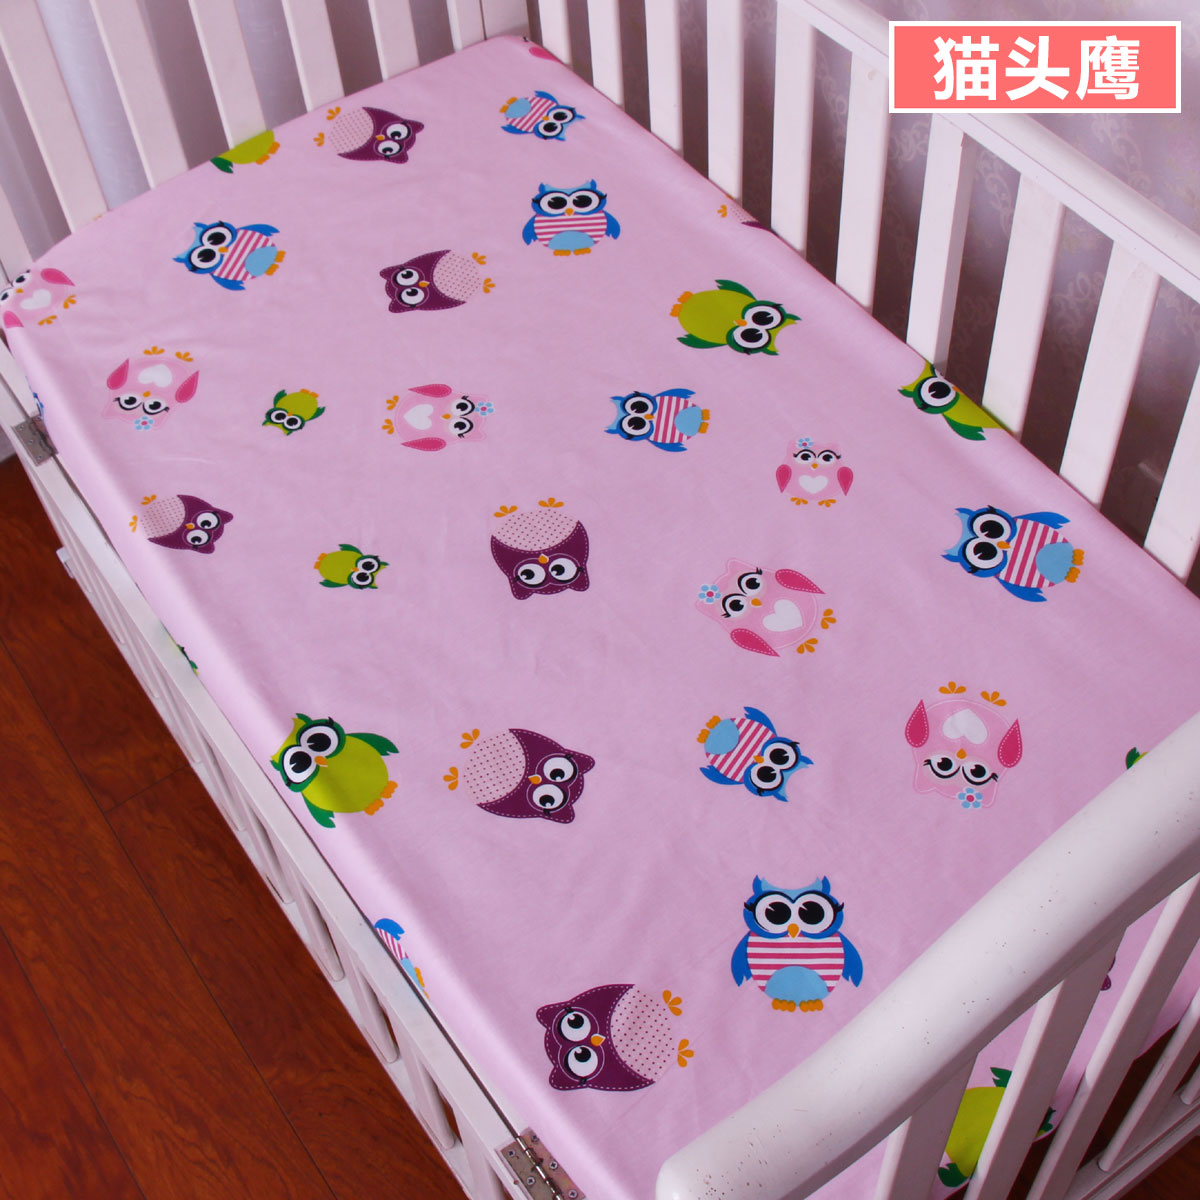 Baby crib zipper sheets - 1pc Rabbit Carrot Owl Giraffe Baby Bed Sheets 100 Cotton Crib Sheet Baby Bedding Set Infant Cot Sheets For Boys Girls 13styles